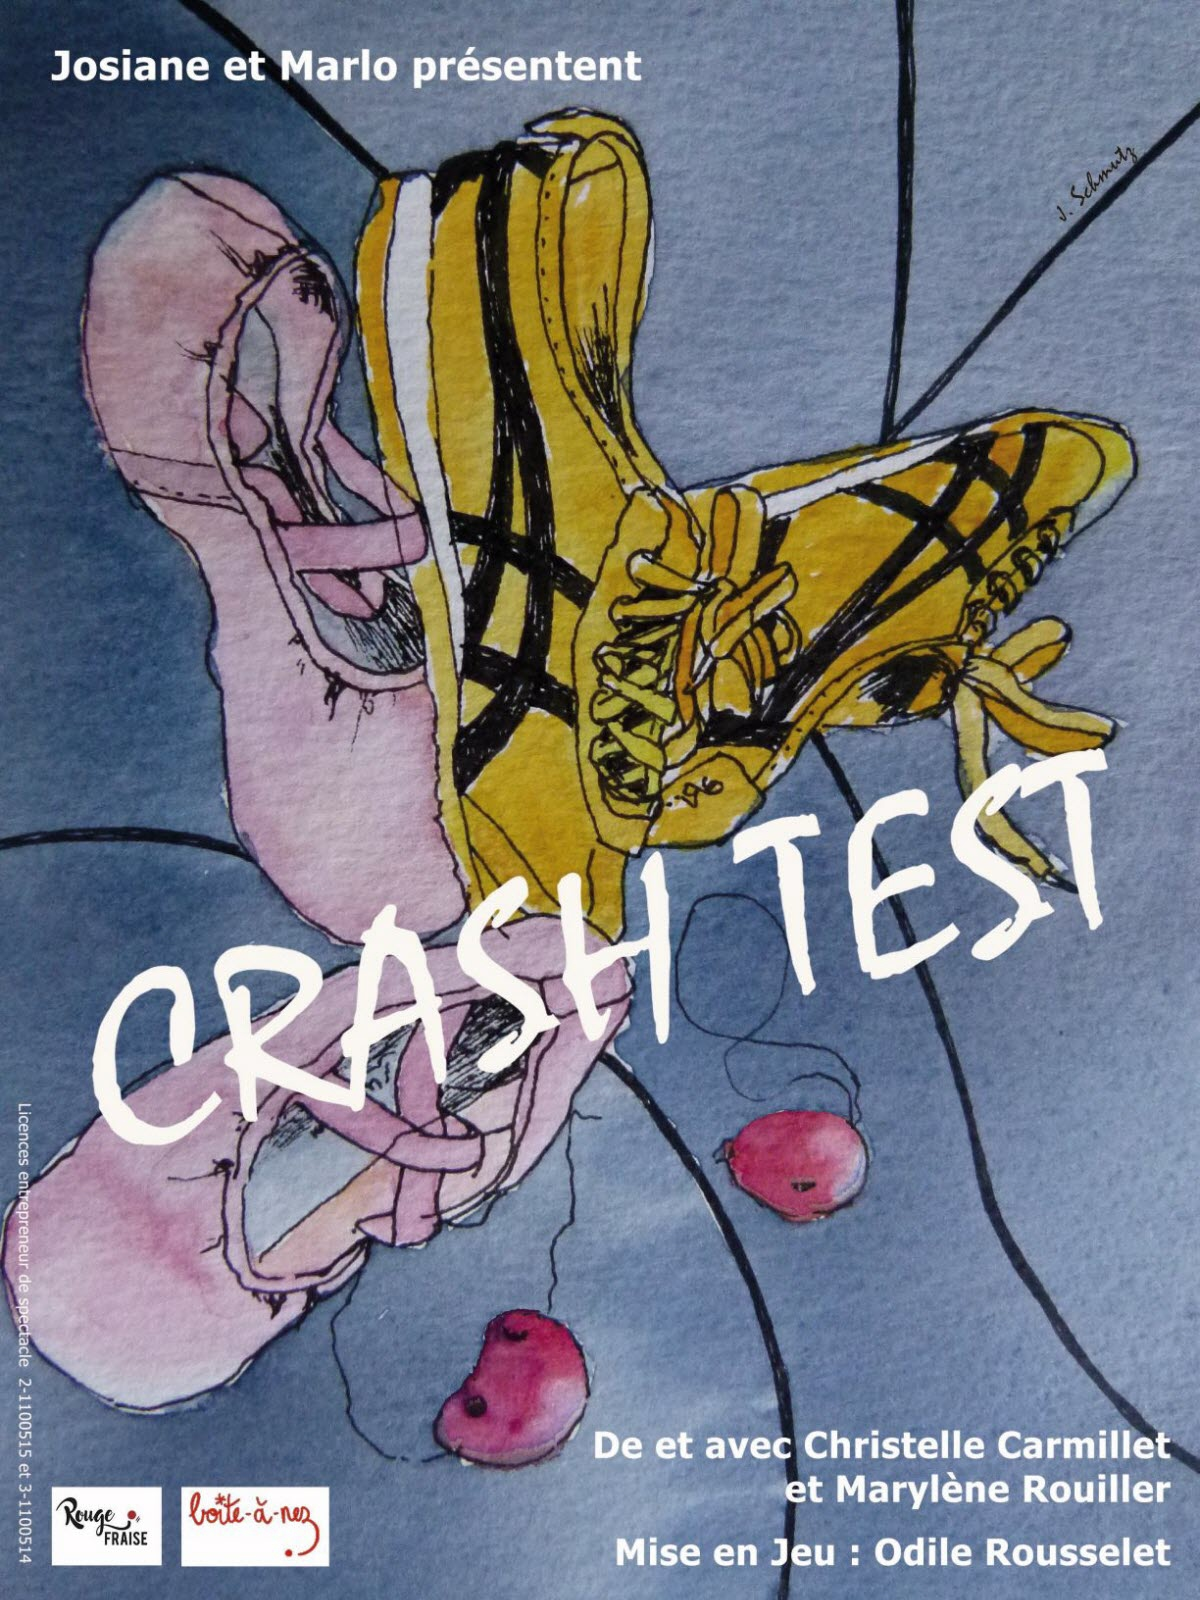 https://www.villers-les-luxeuil.com/projets/villers/files/images/2019_Evenements/07_Crash_Test/illustration_crash_test_1_1557171749.jpg